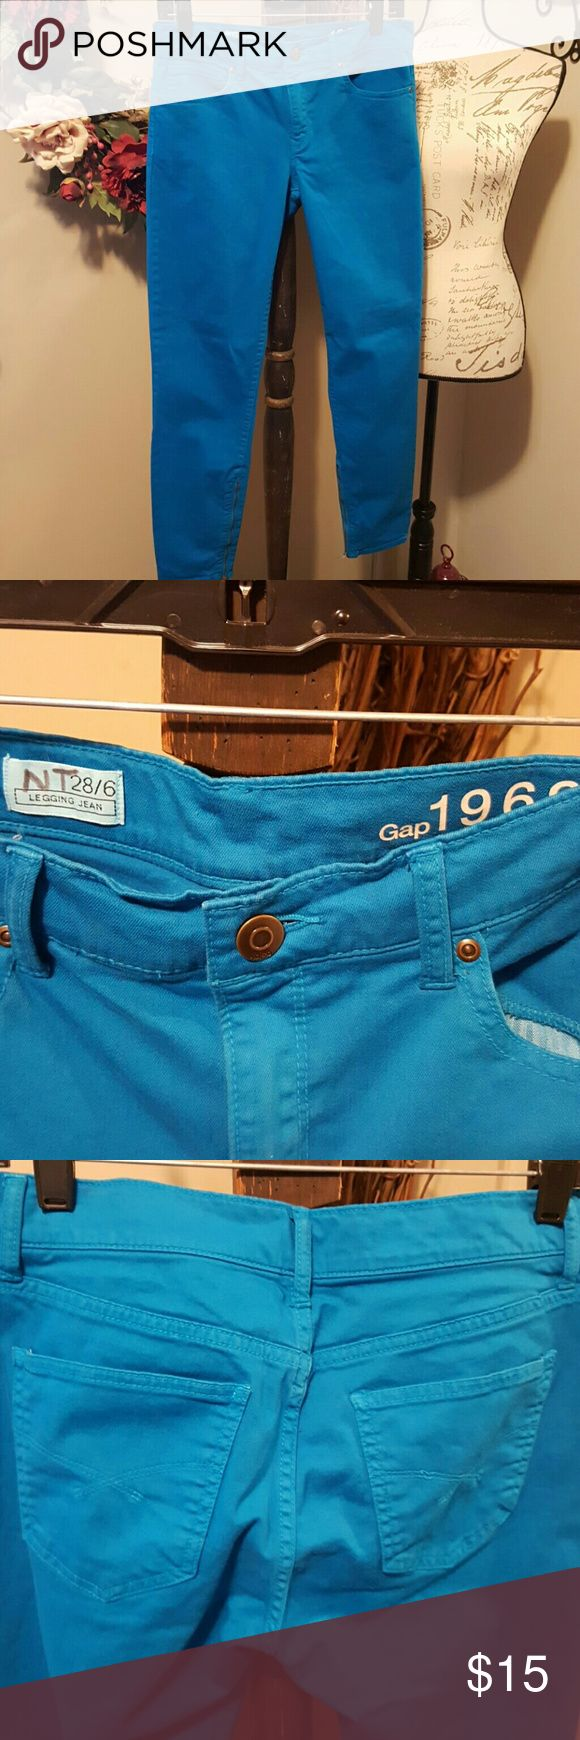 Gap 1969 Legging/Jeans 28/6 Teal skinny jeans from Gap with zipper accent. Size 28/6 GAP Jeans Skinny